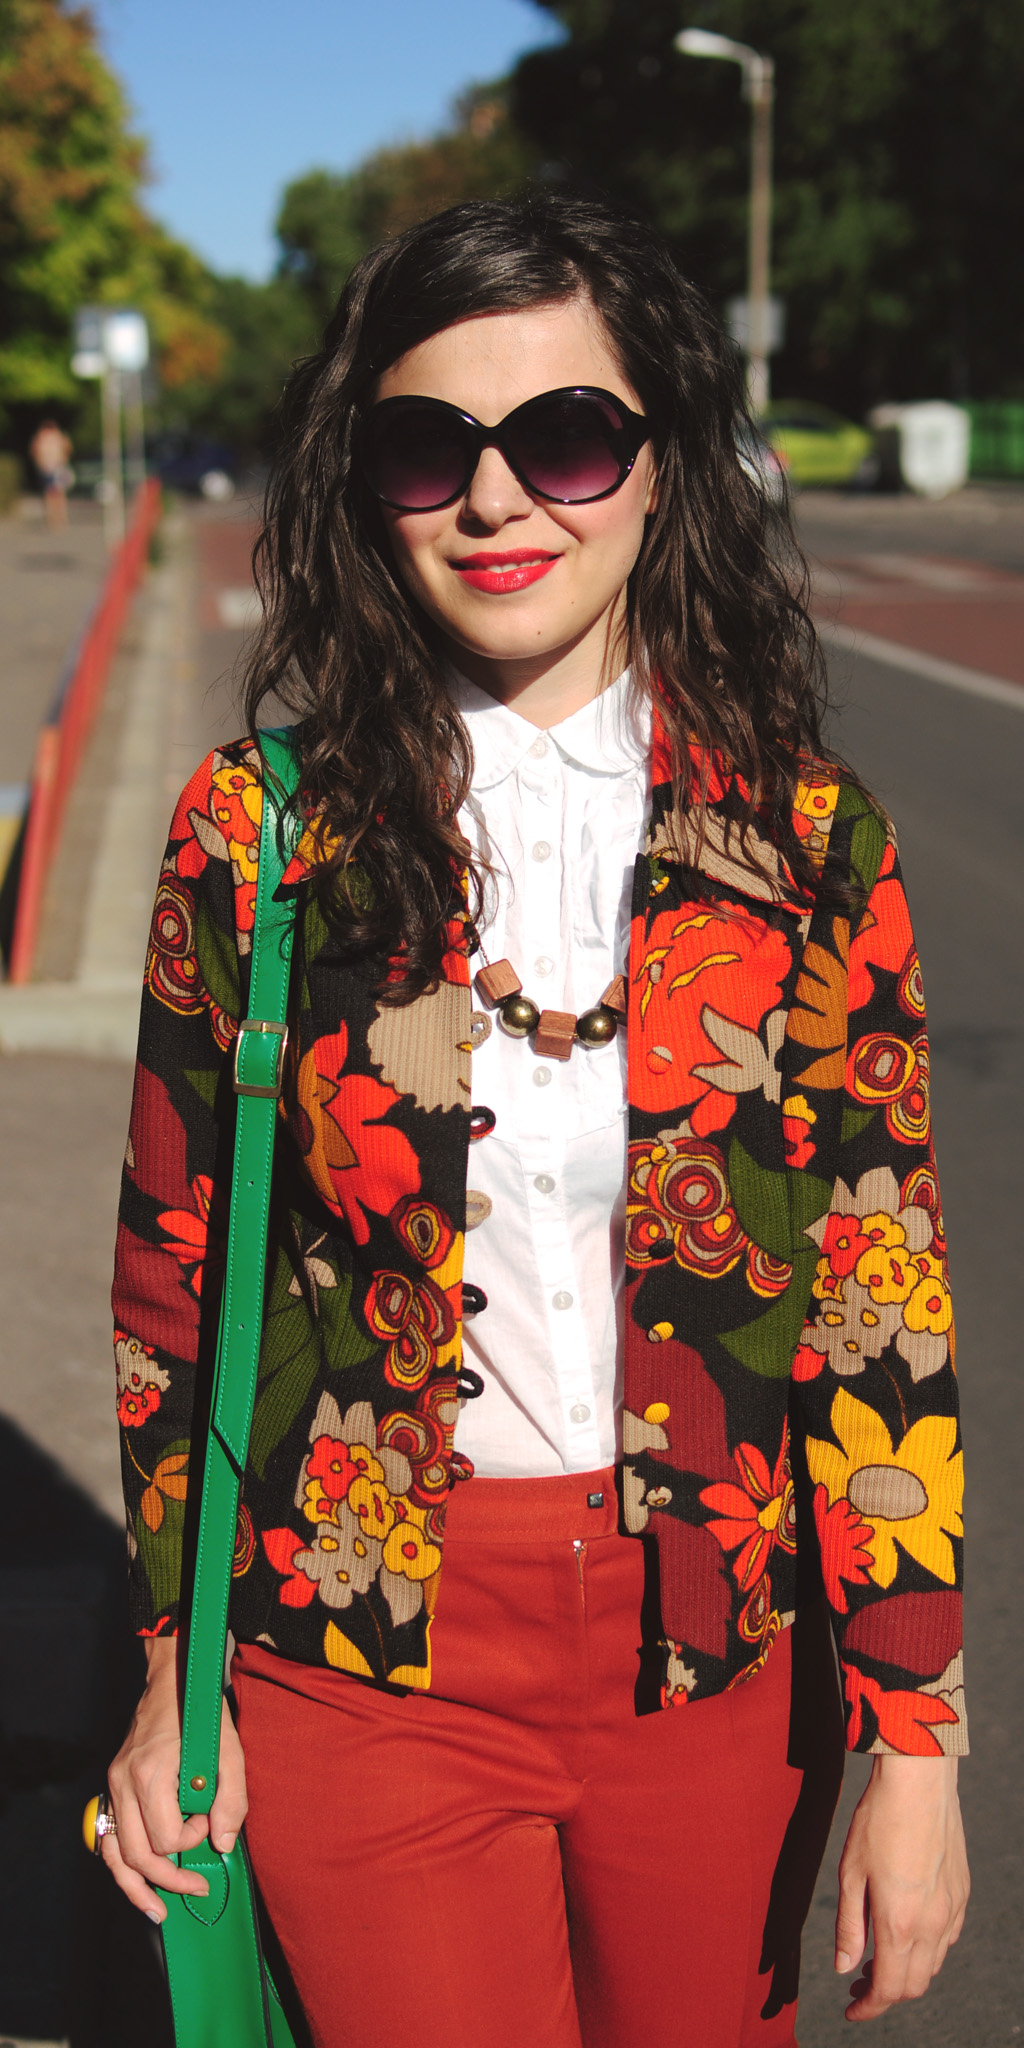 70s style outfit flowers blazer flares orange green satchel bag curly hair autumn thrifted